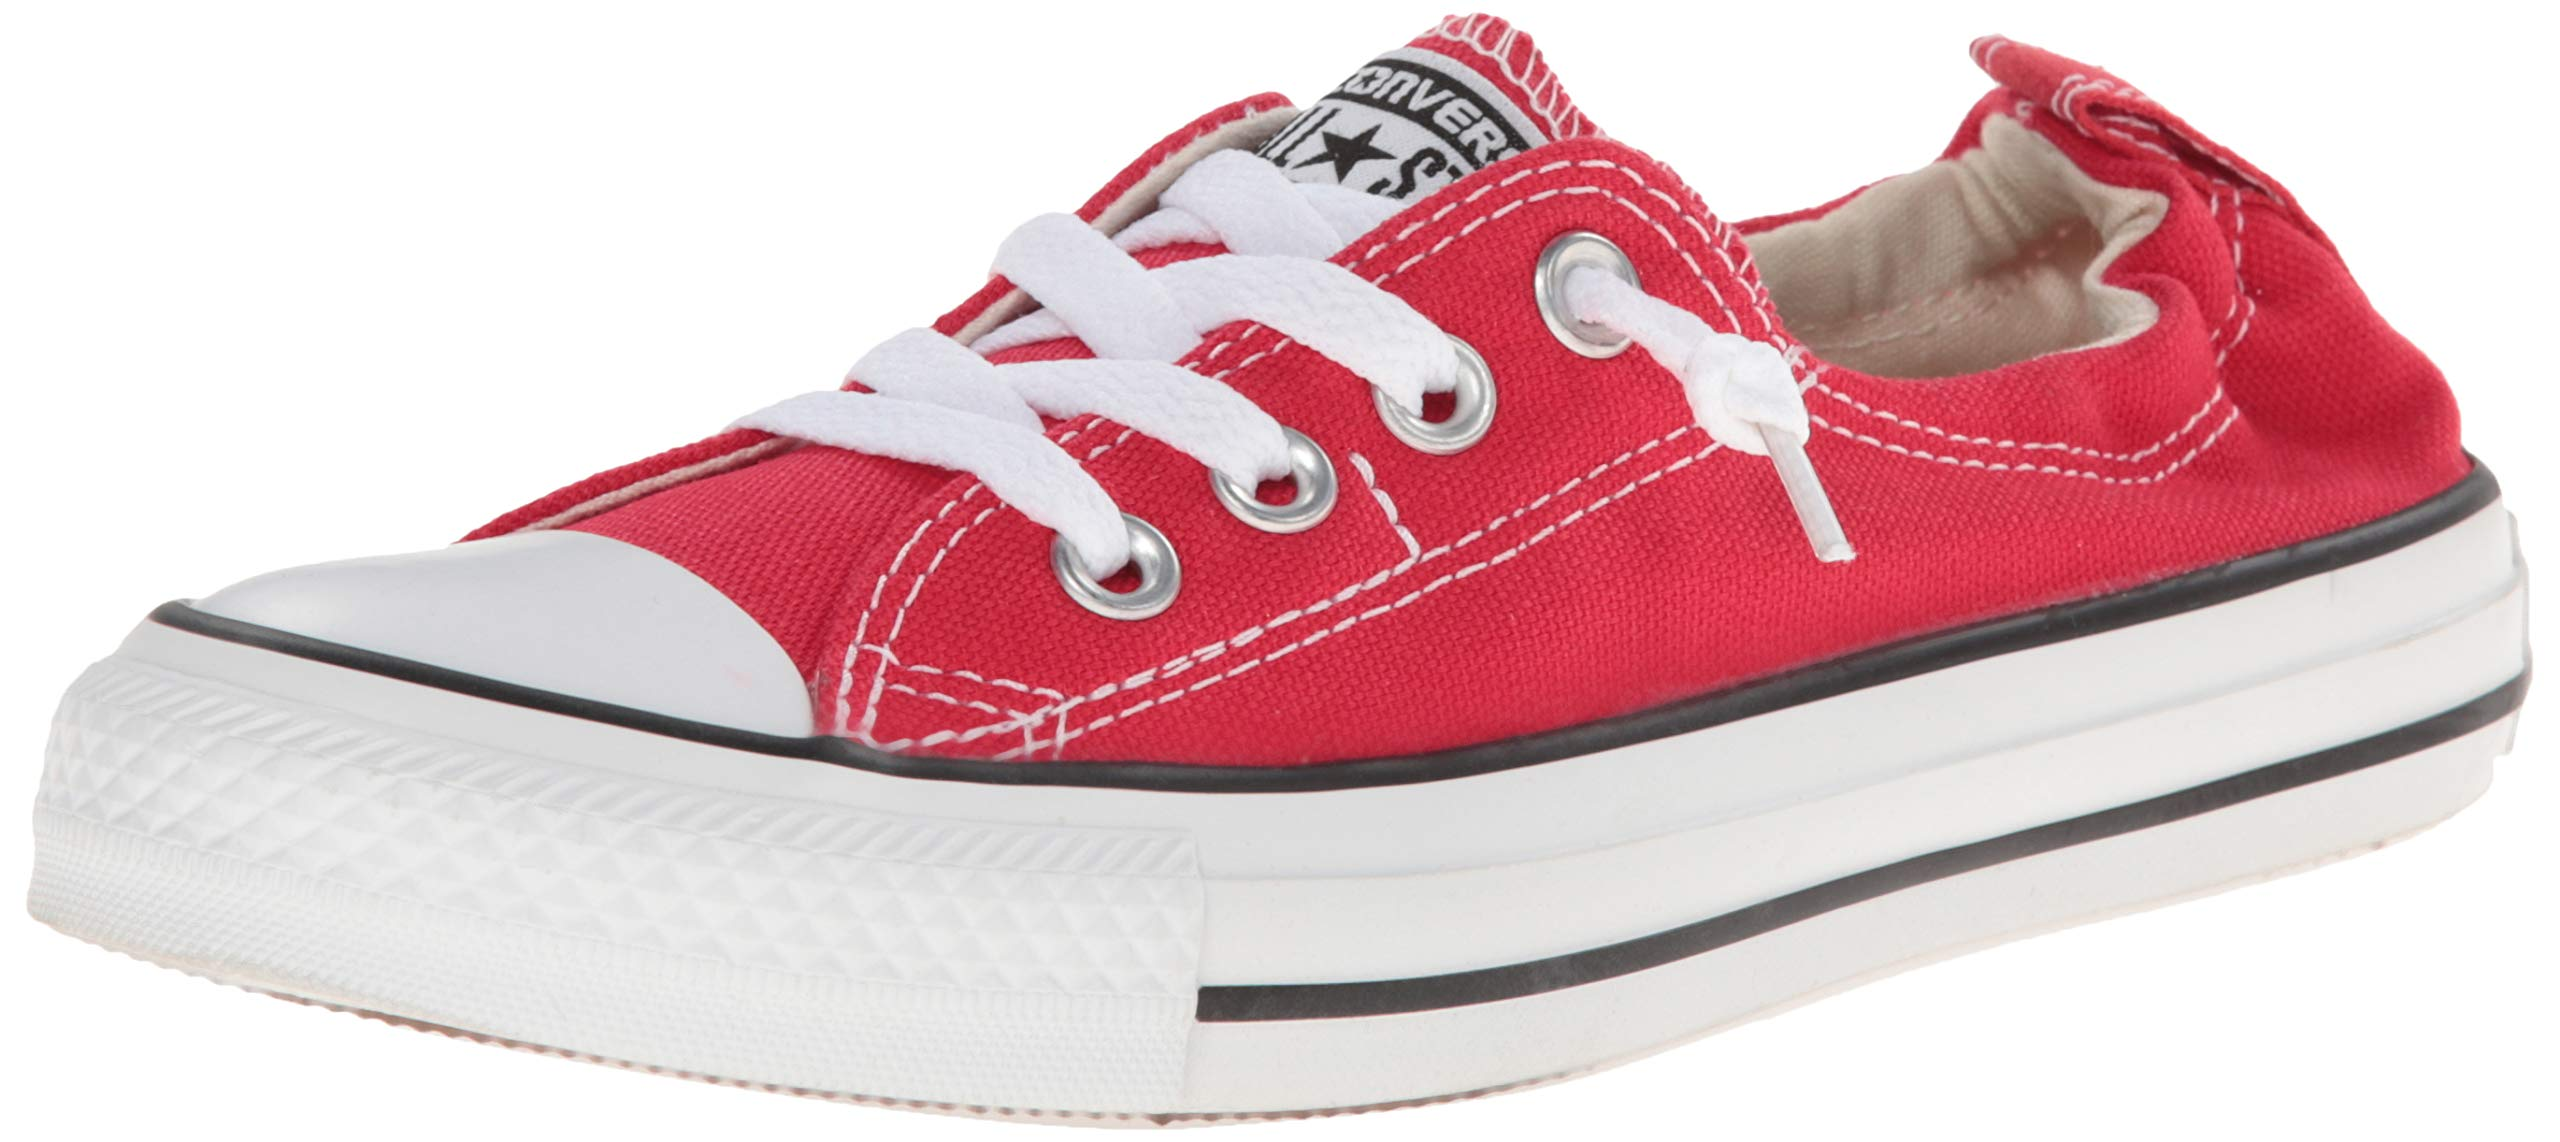 Converse Chuck Taylor All Star Shoreline Red Lace-Up Sneaker - 9 B(M) US by Converse